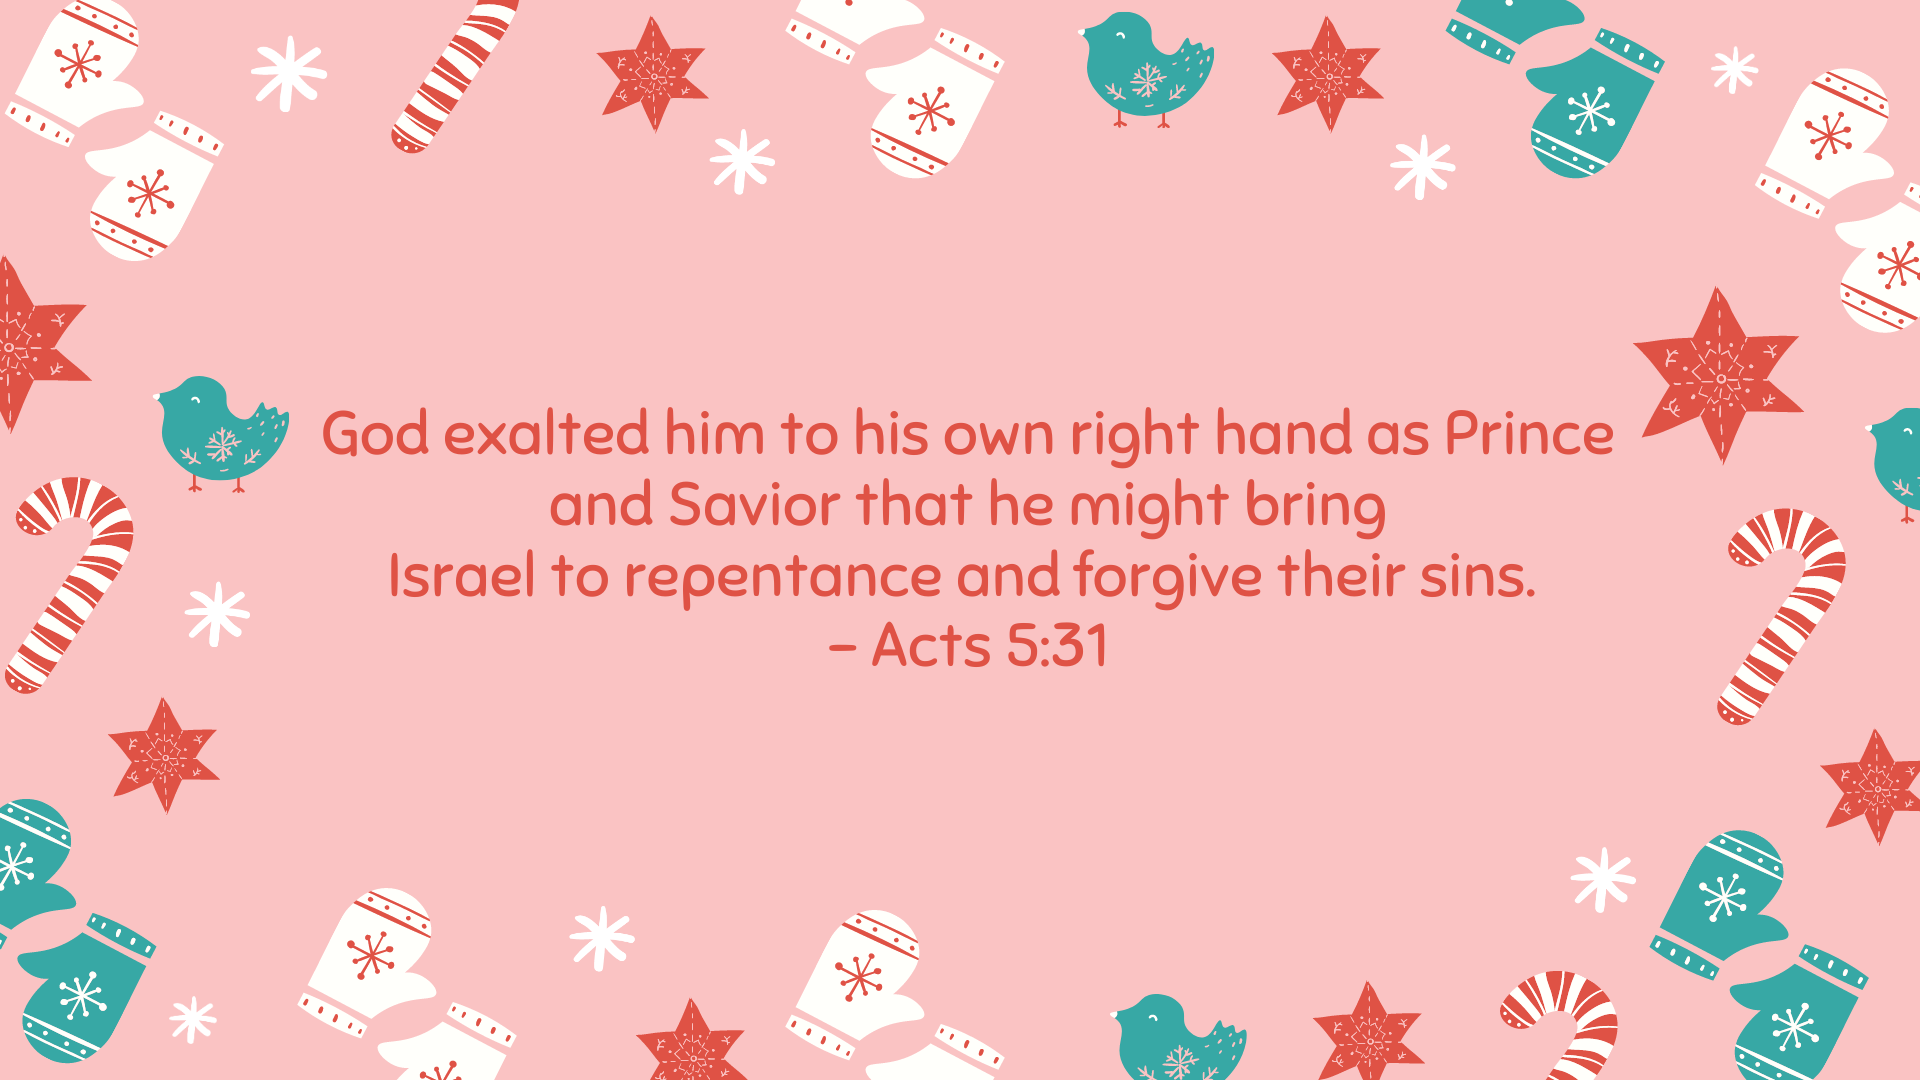 Acts 5:31